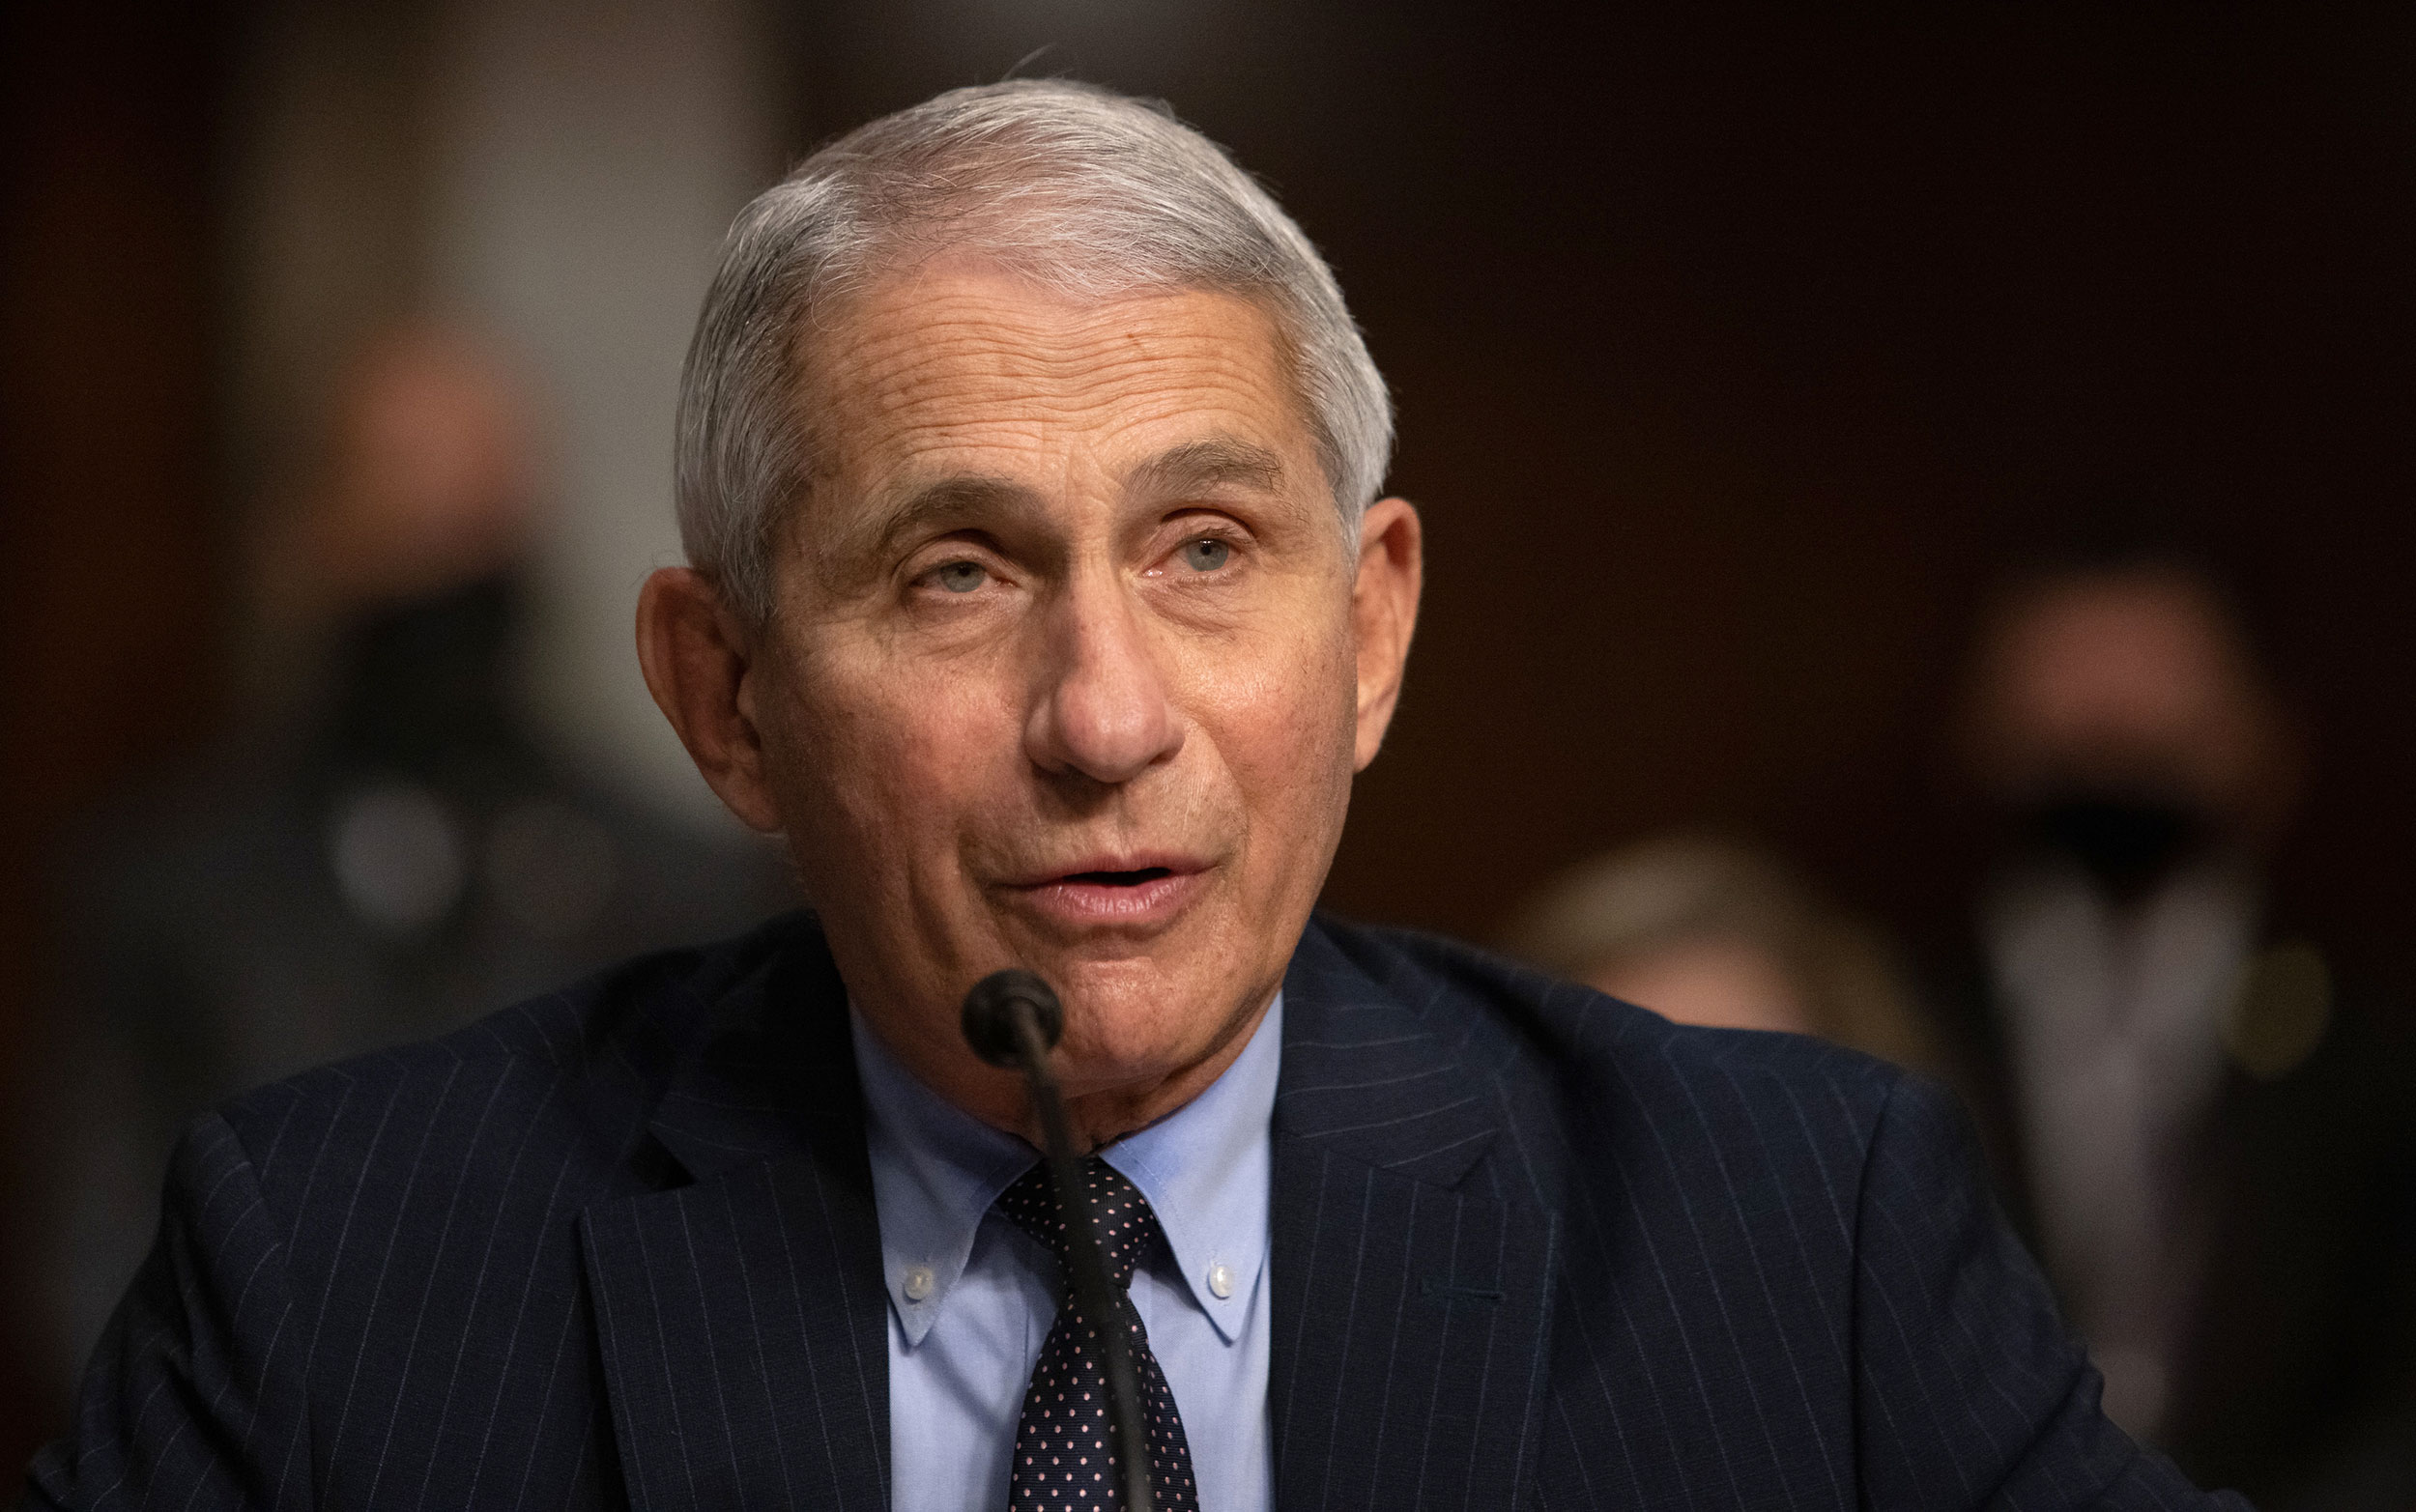 Dr. Anthony Fauci testifies at a Senate Health, Education, and Labor and Pensions Committee on Capitol Hill,on September 23 in Washington, DC.